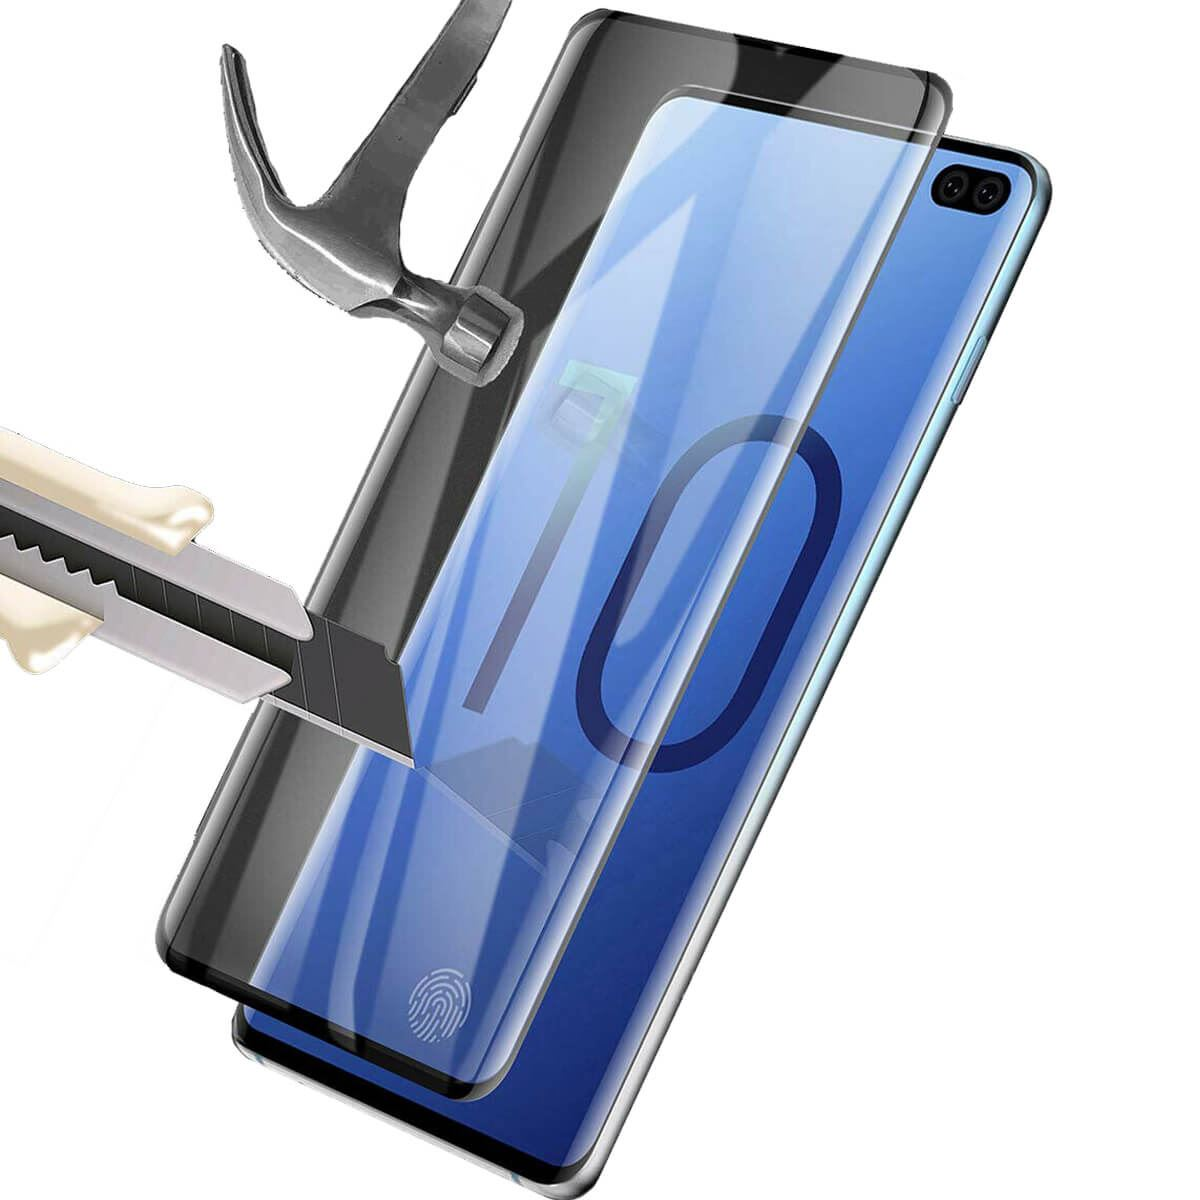 Screen-Protector-Film-Full-Coverage-Curved-Fit-Samsung-Galaxy-S10-S10E-Plus thumbnail 4